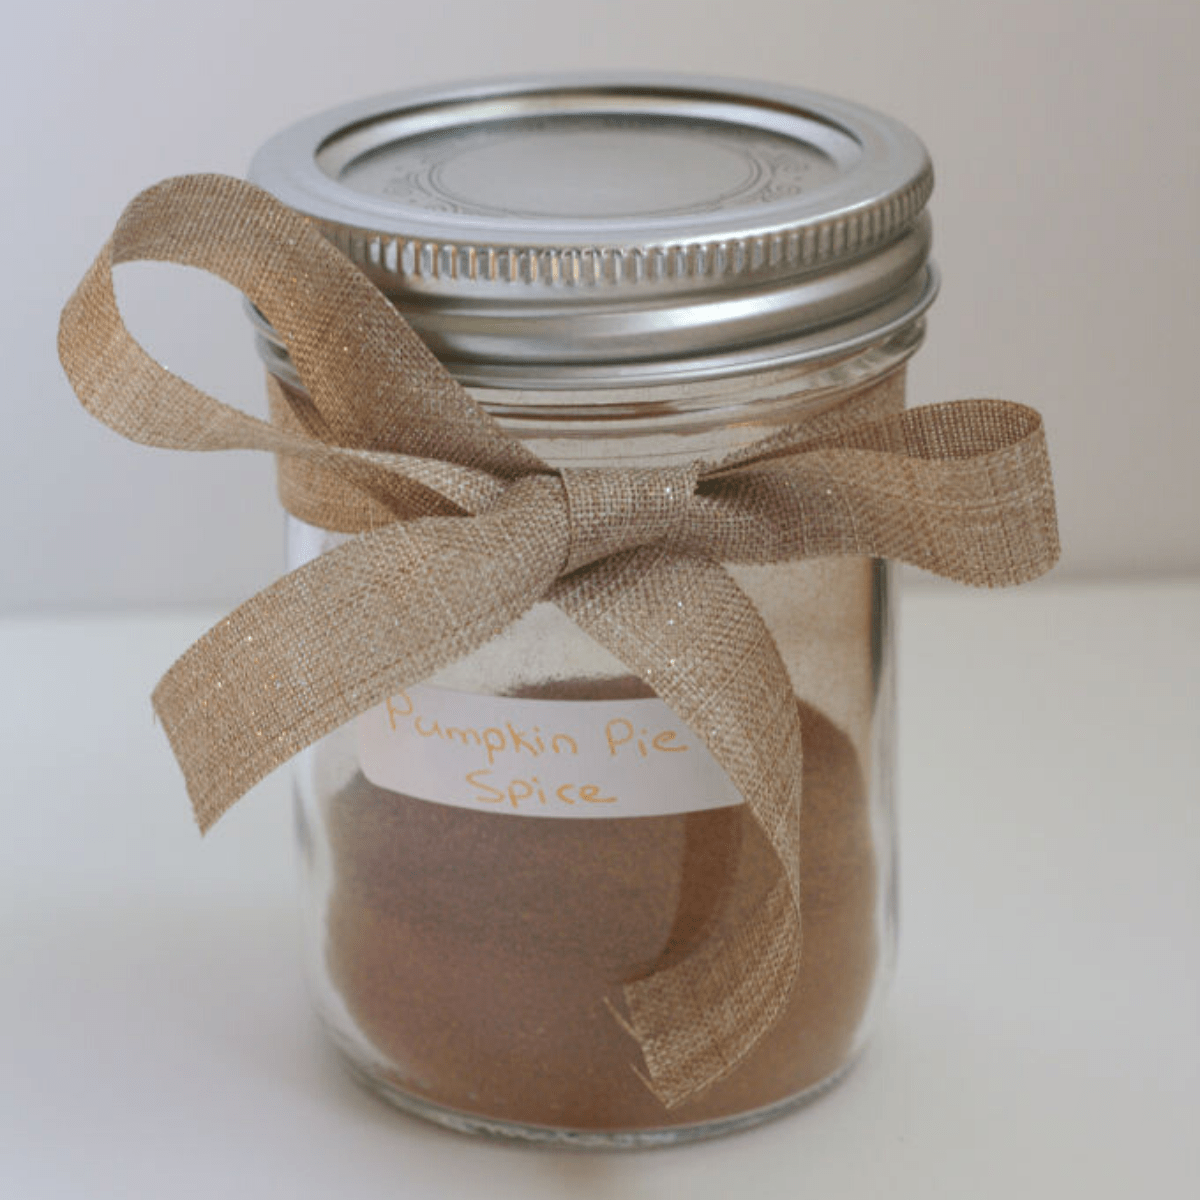 Spice in a mason jar with a bow around it.